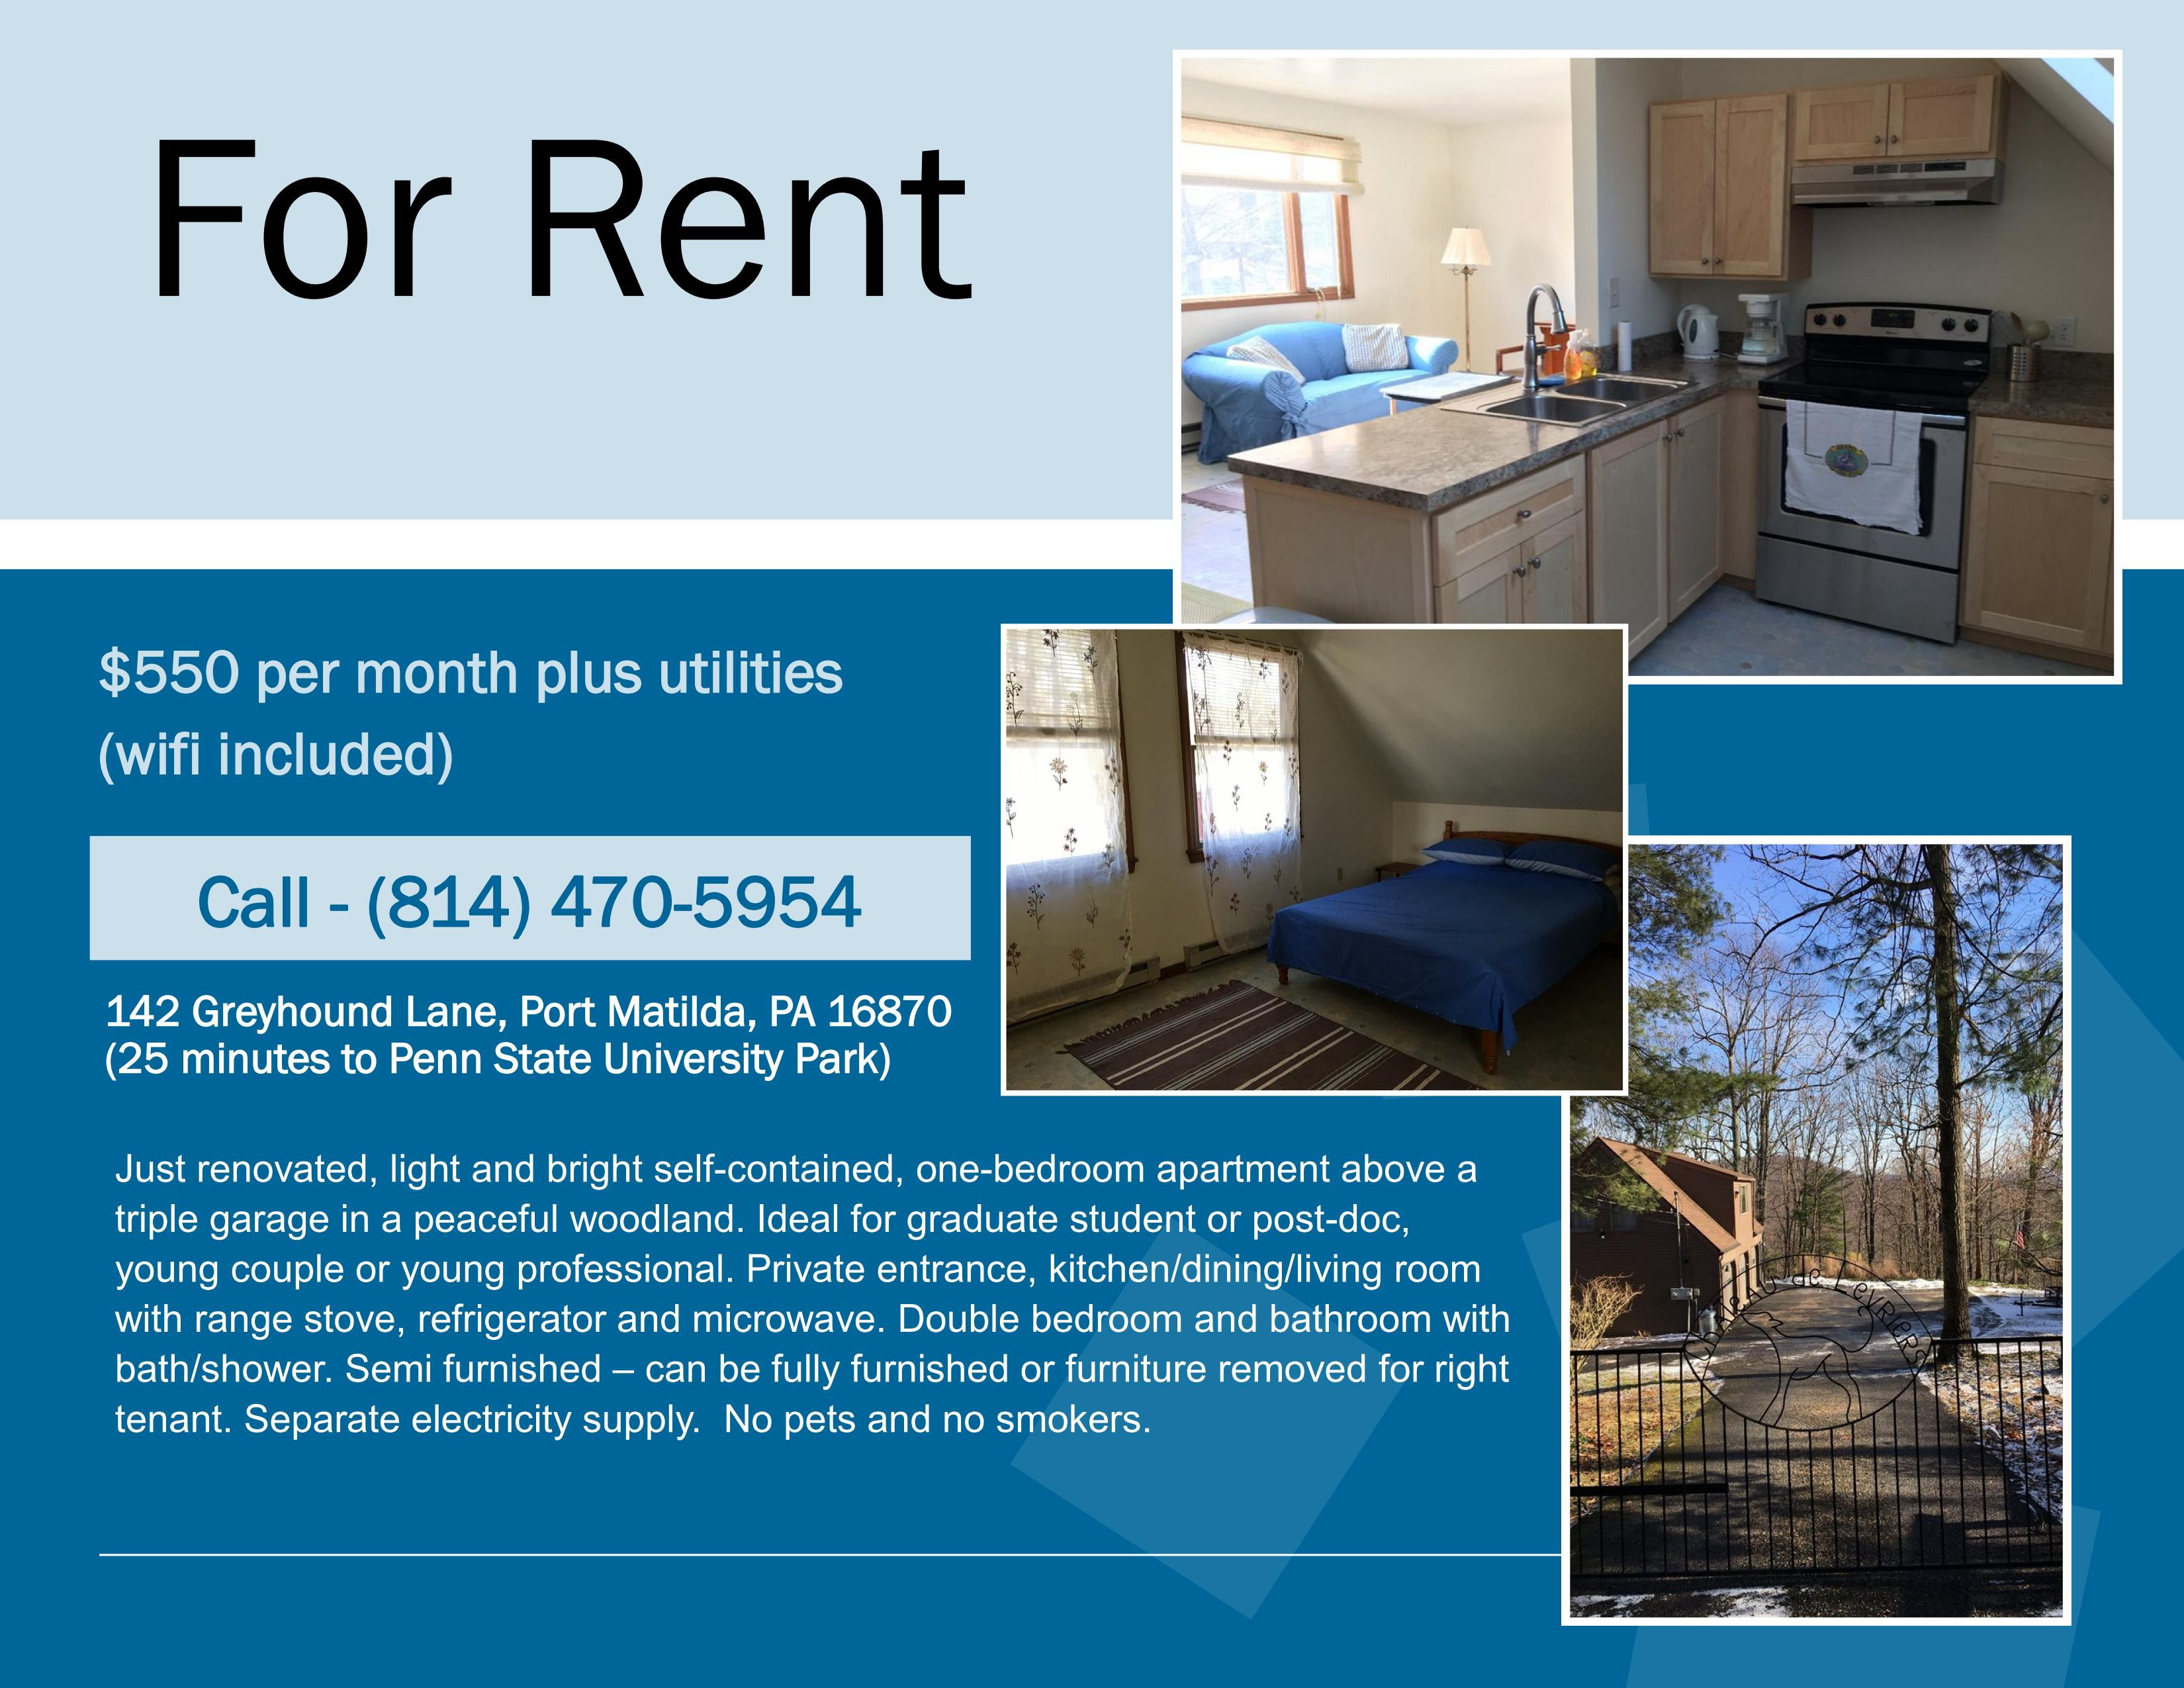 For Rent Feb 17_01